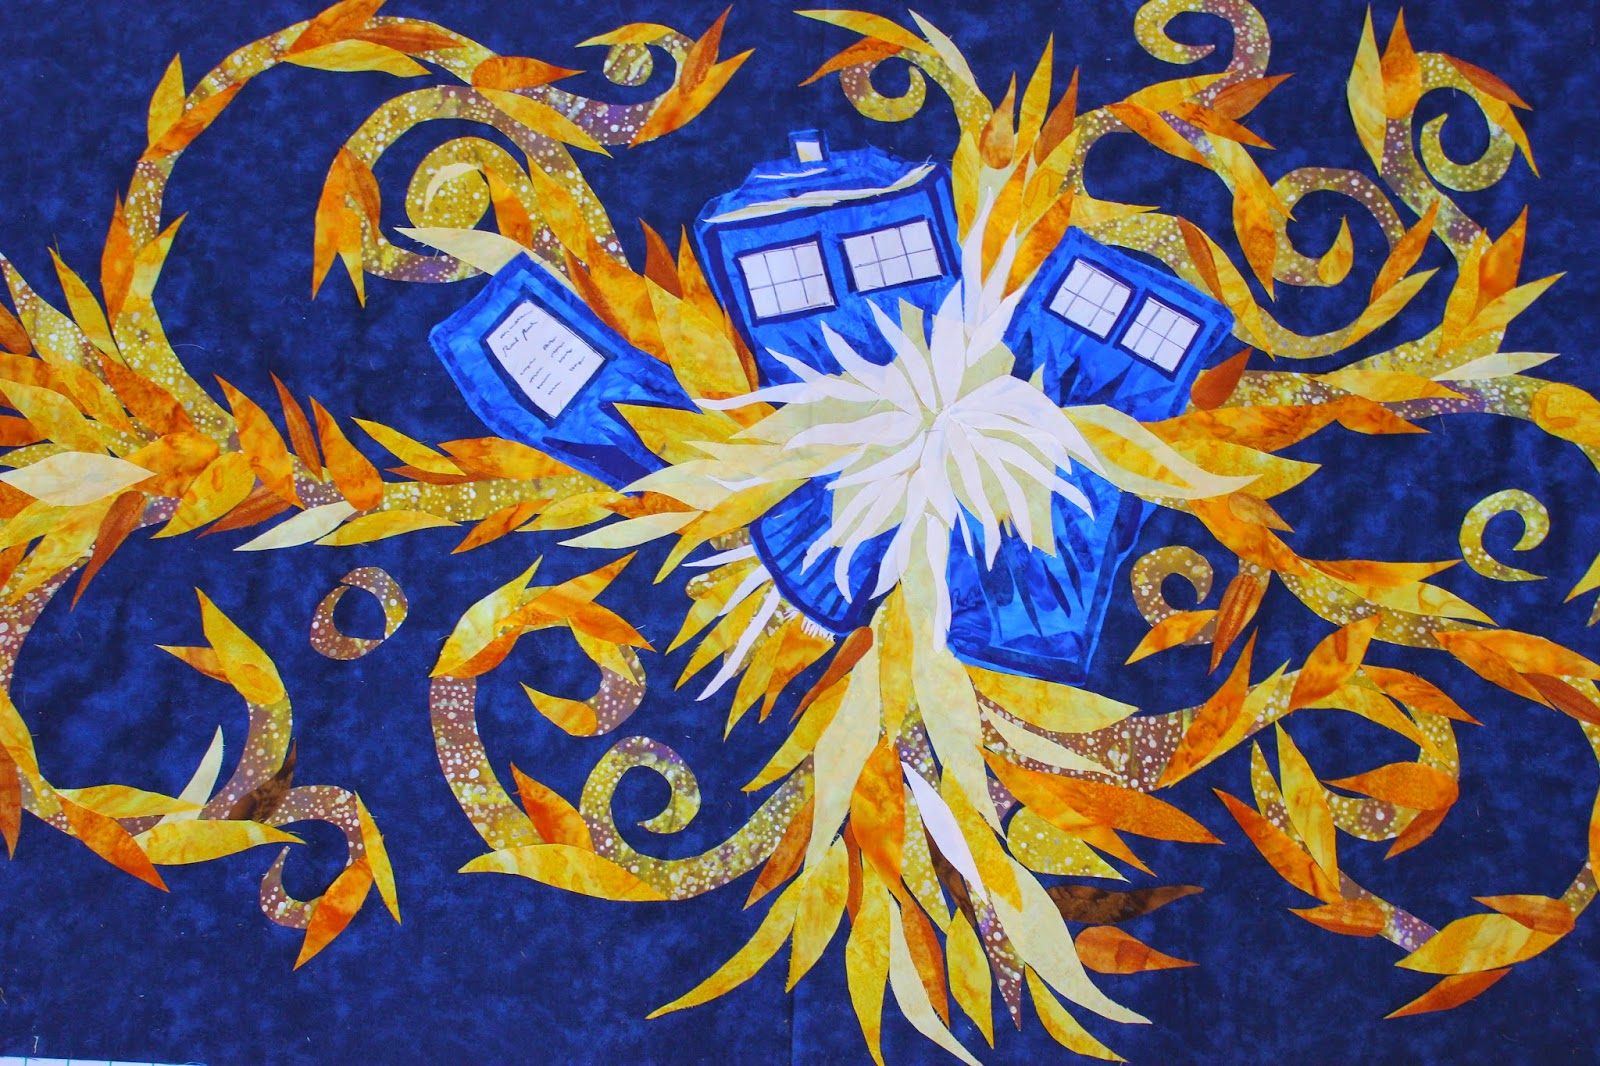 My Very Own Exploding Tardis